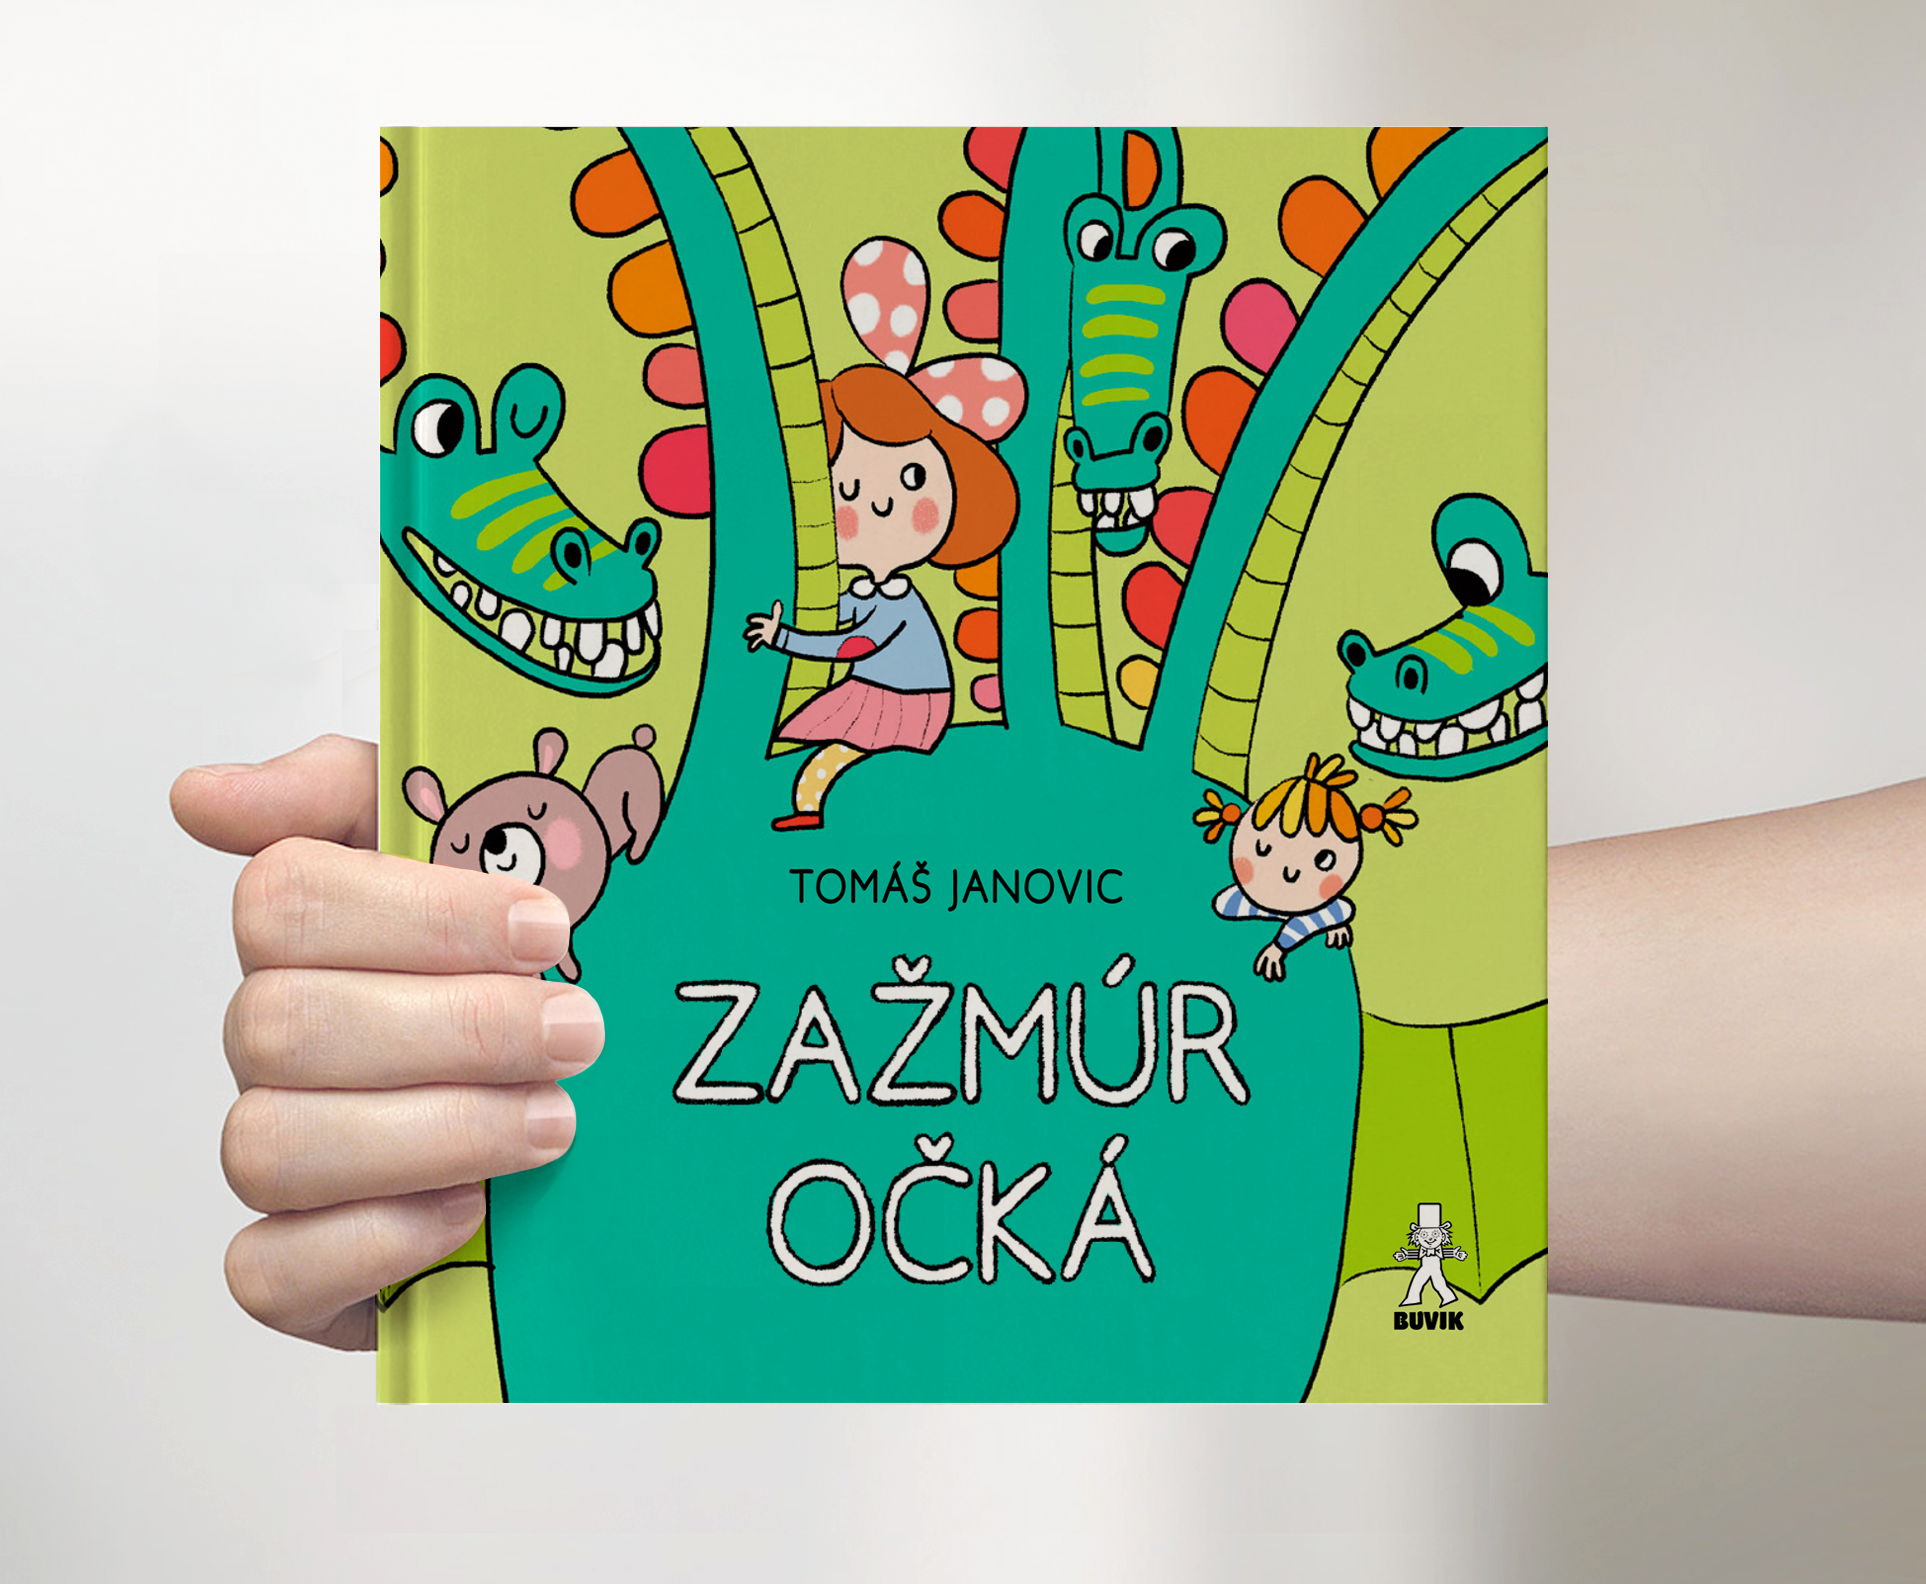 Hello everybody! I will be celebrating the fact that I don't have to go to school anymore tomorrow when a new book with my illustrations comes out here in Slovakia. This one is full of beautiful poems by Tomas Janovic and I don't think I have had such a wonderful piece of literature on my desk in a while. Keep your eyes open when entering bookstores or pre-order via the publisher's online store  https://www.buvik.sk/zazmur-ocka